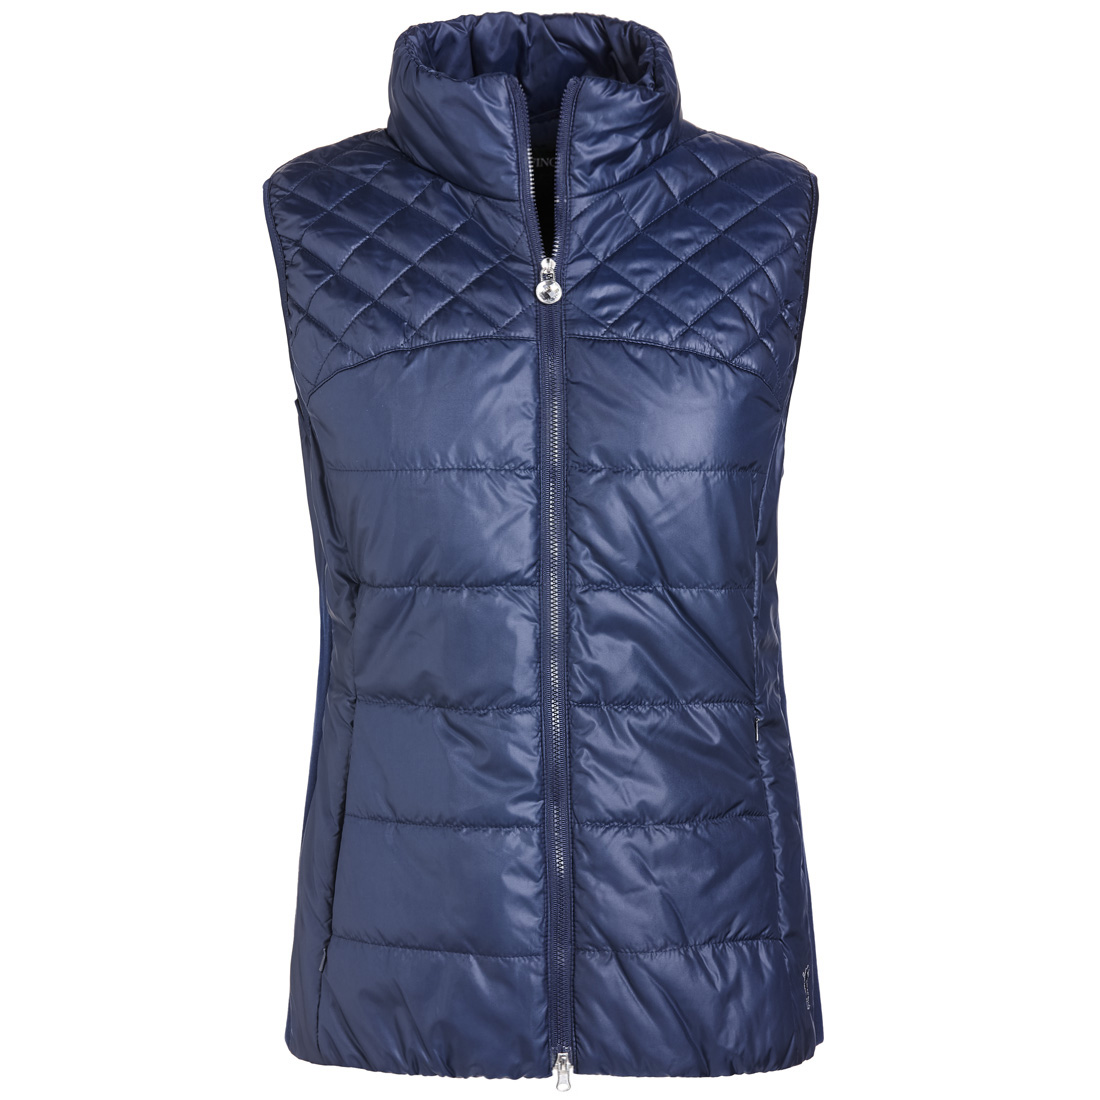 Wind protection ladies' quilted waistcoat with side stretch elements